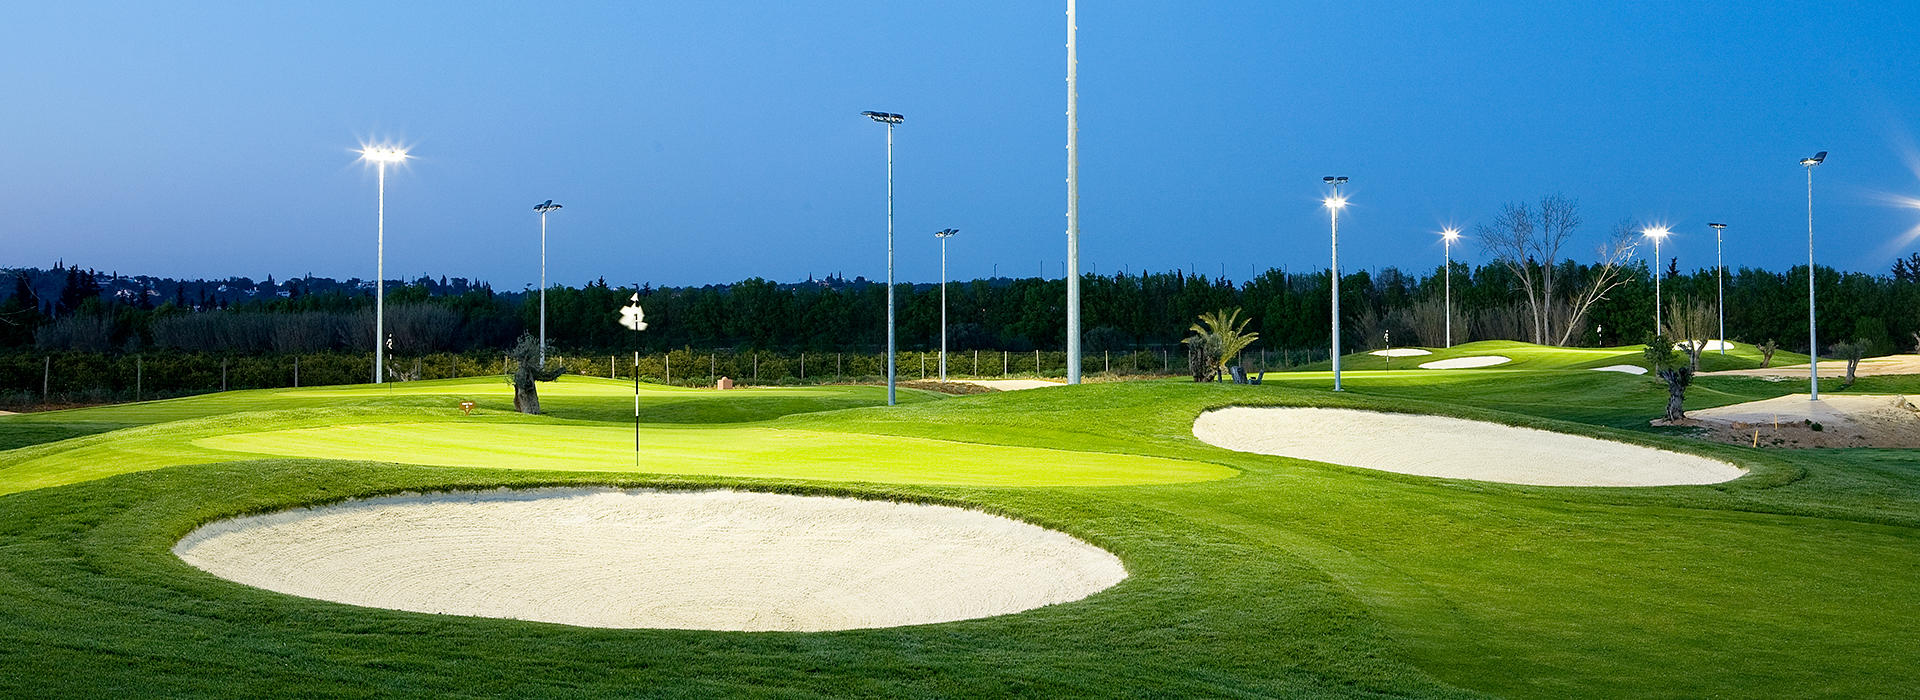 Golf Academy by night